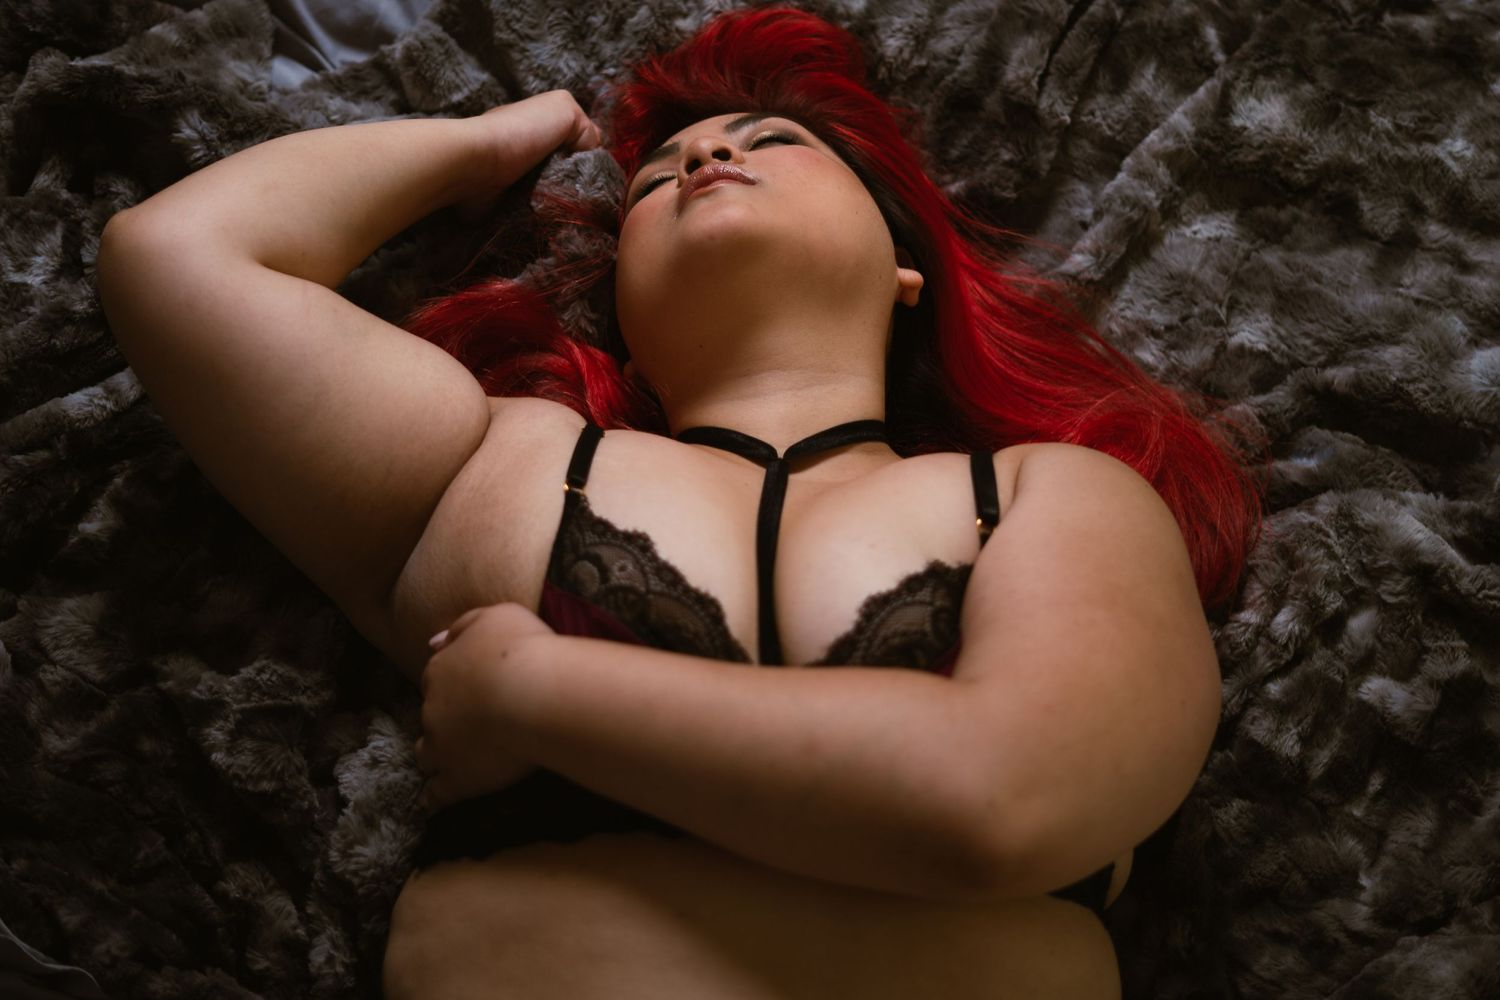 woman in a suggestive boudoir pose laying on her back in a strappy bra, eyes closed and head thrown back